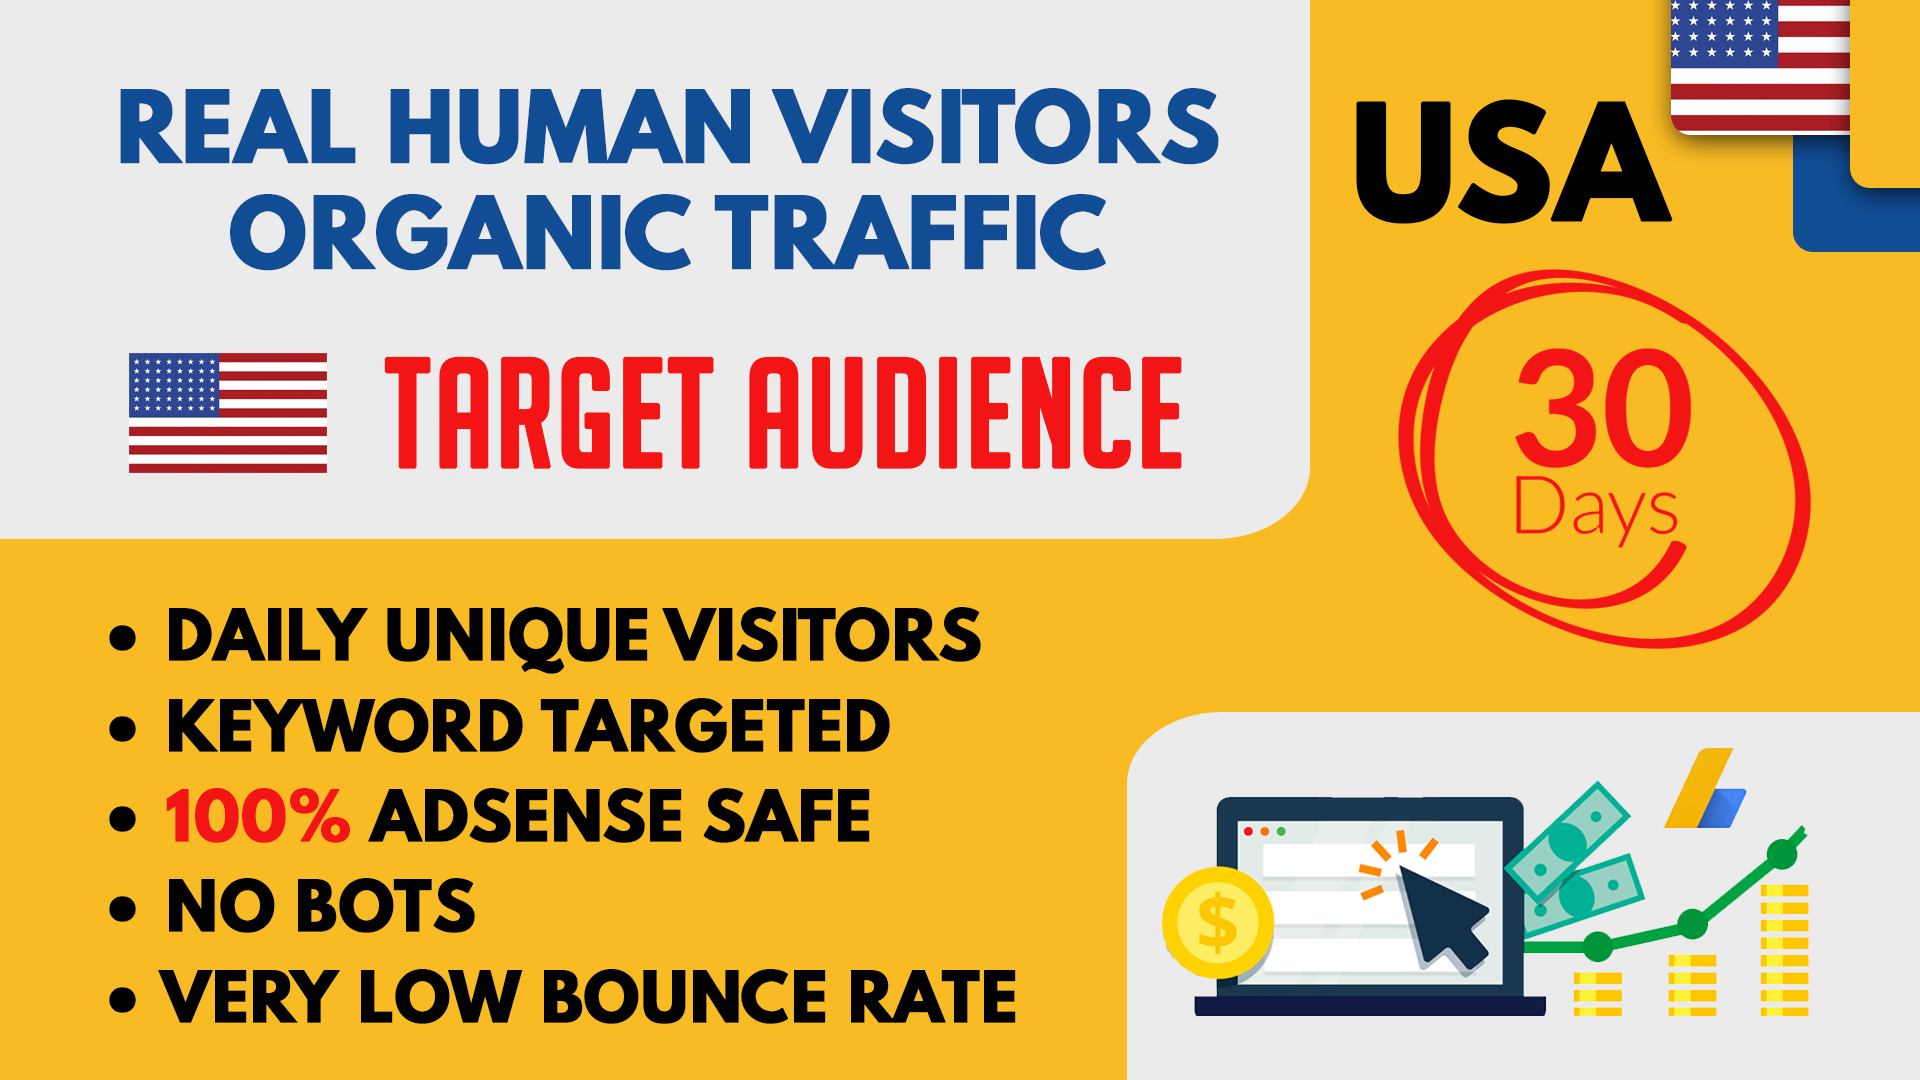 Bring Real Human visitors from USA to Boost your Website Rankings